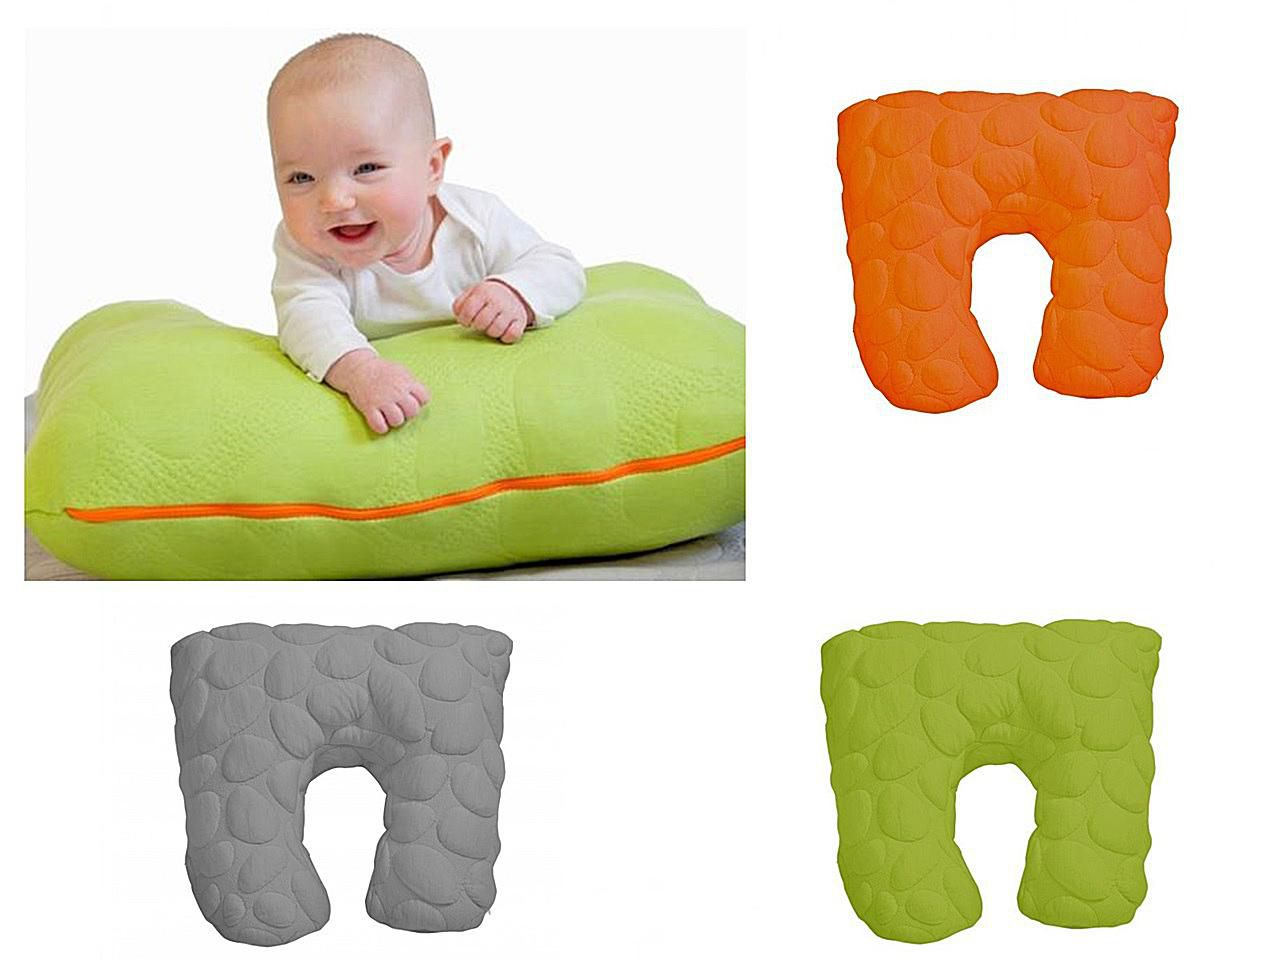 Horse shaped pillows for children - Horse Shaped Pillows For Children 25